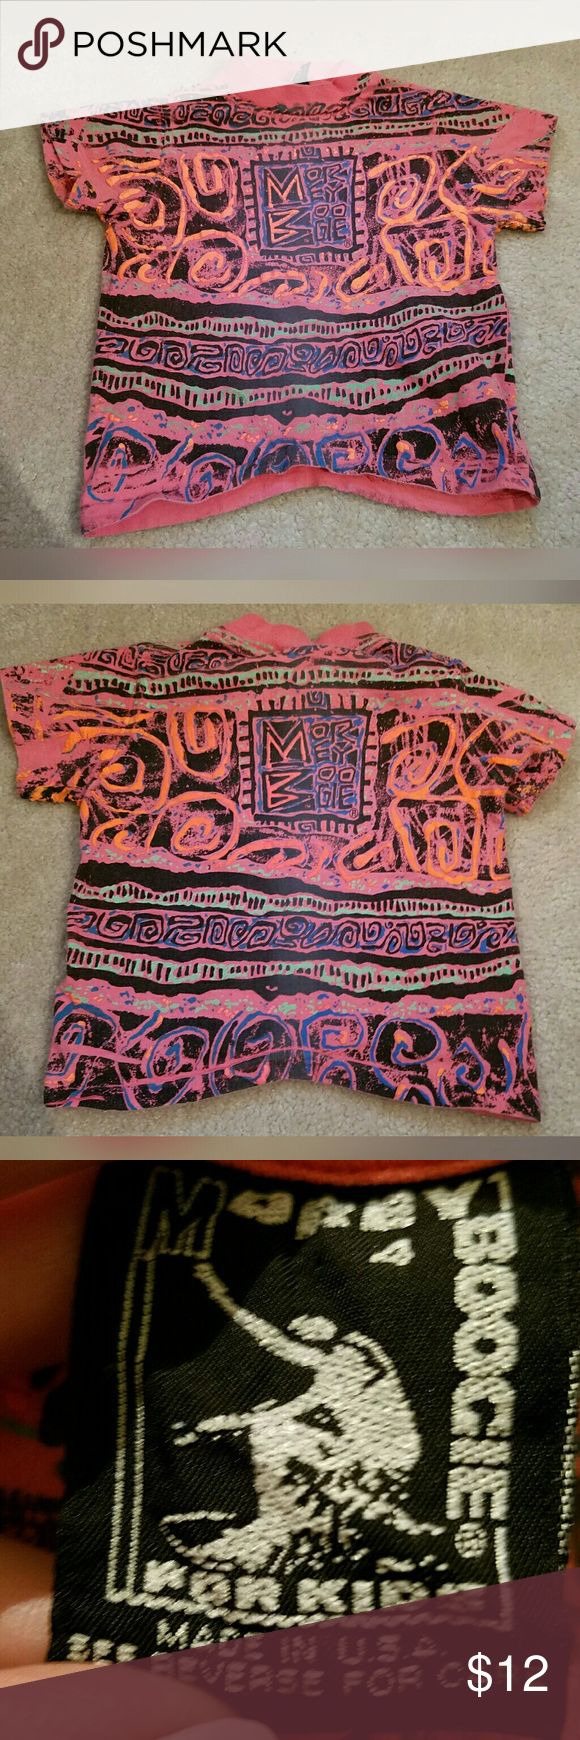 Super cool, VINTAGE, MOREY, toddler tee!! This is rad! Excellent condition. Brand is Morey Boogie Body Boards. Size is 4. Some tiny stains on collar. (See 5th pic). Vintage Shirts & Tops Tees - Short Sleeve